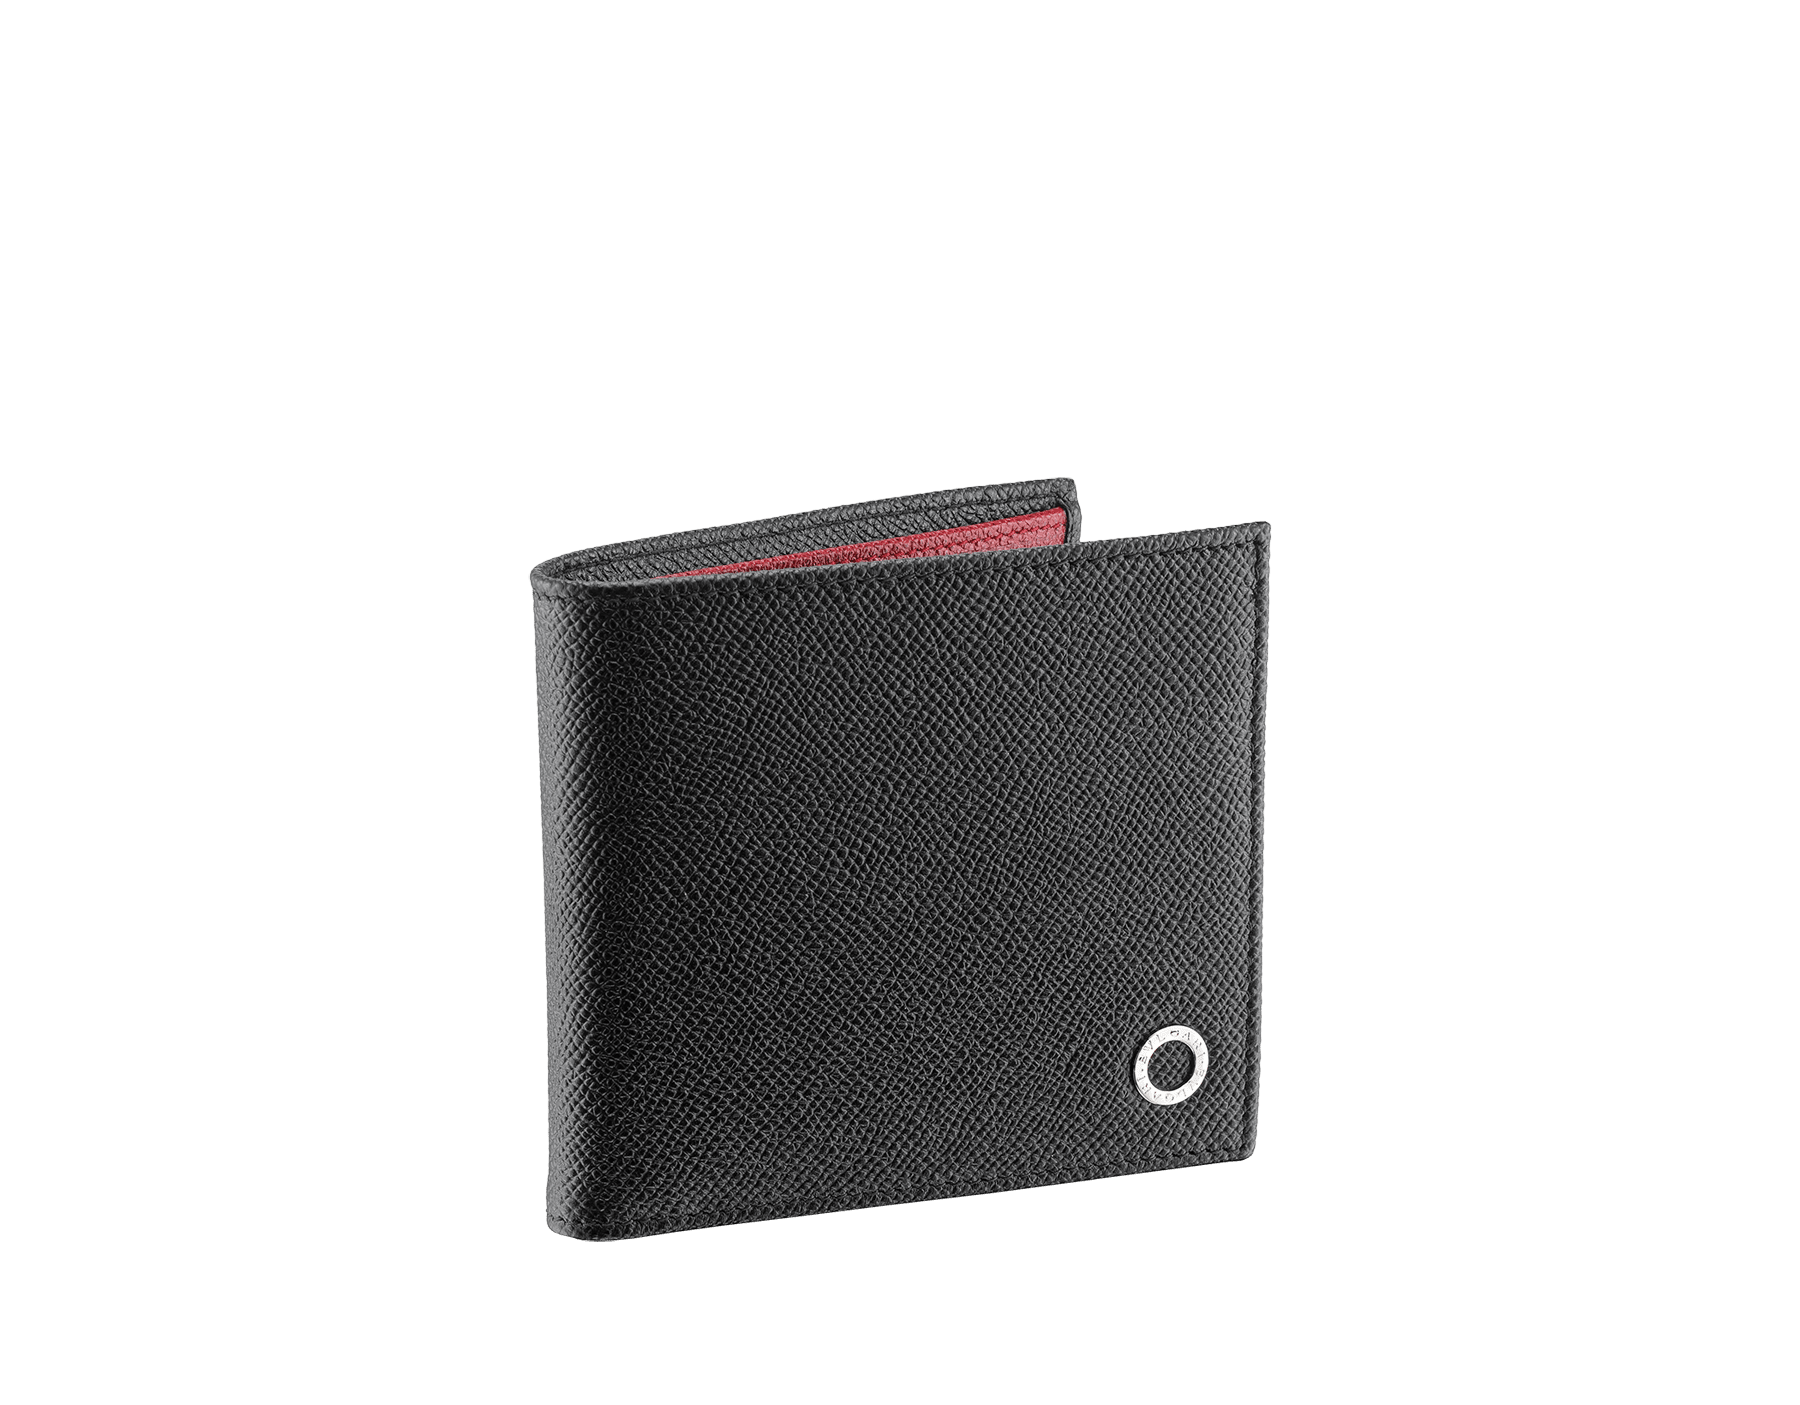 BVLGARI BVLGARI man wallet in black and ruby dahlia grain calf leather and black nappa lining. Iconic logo décor in palladium plated brass. 288273 image 1